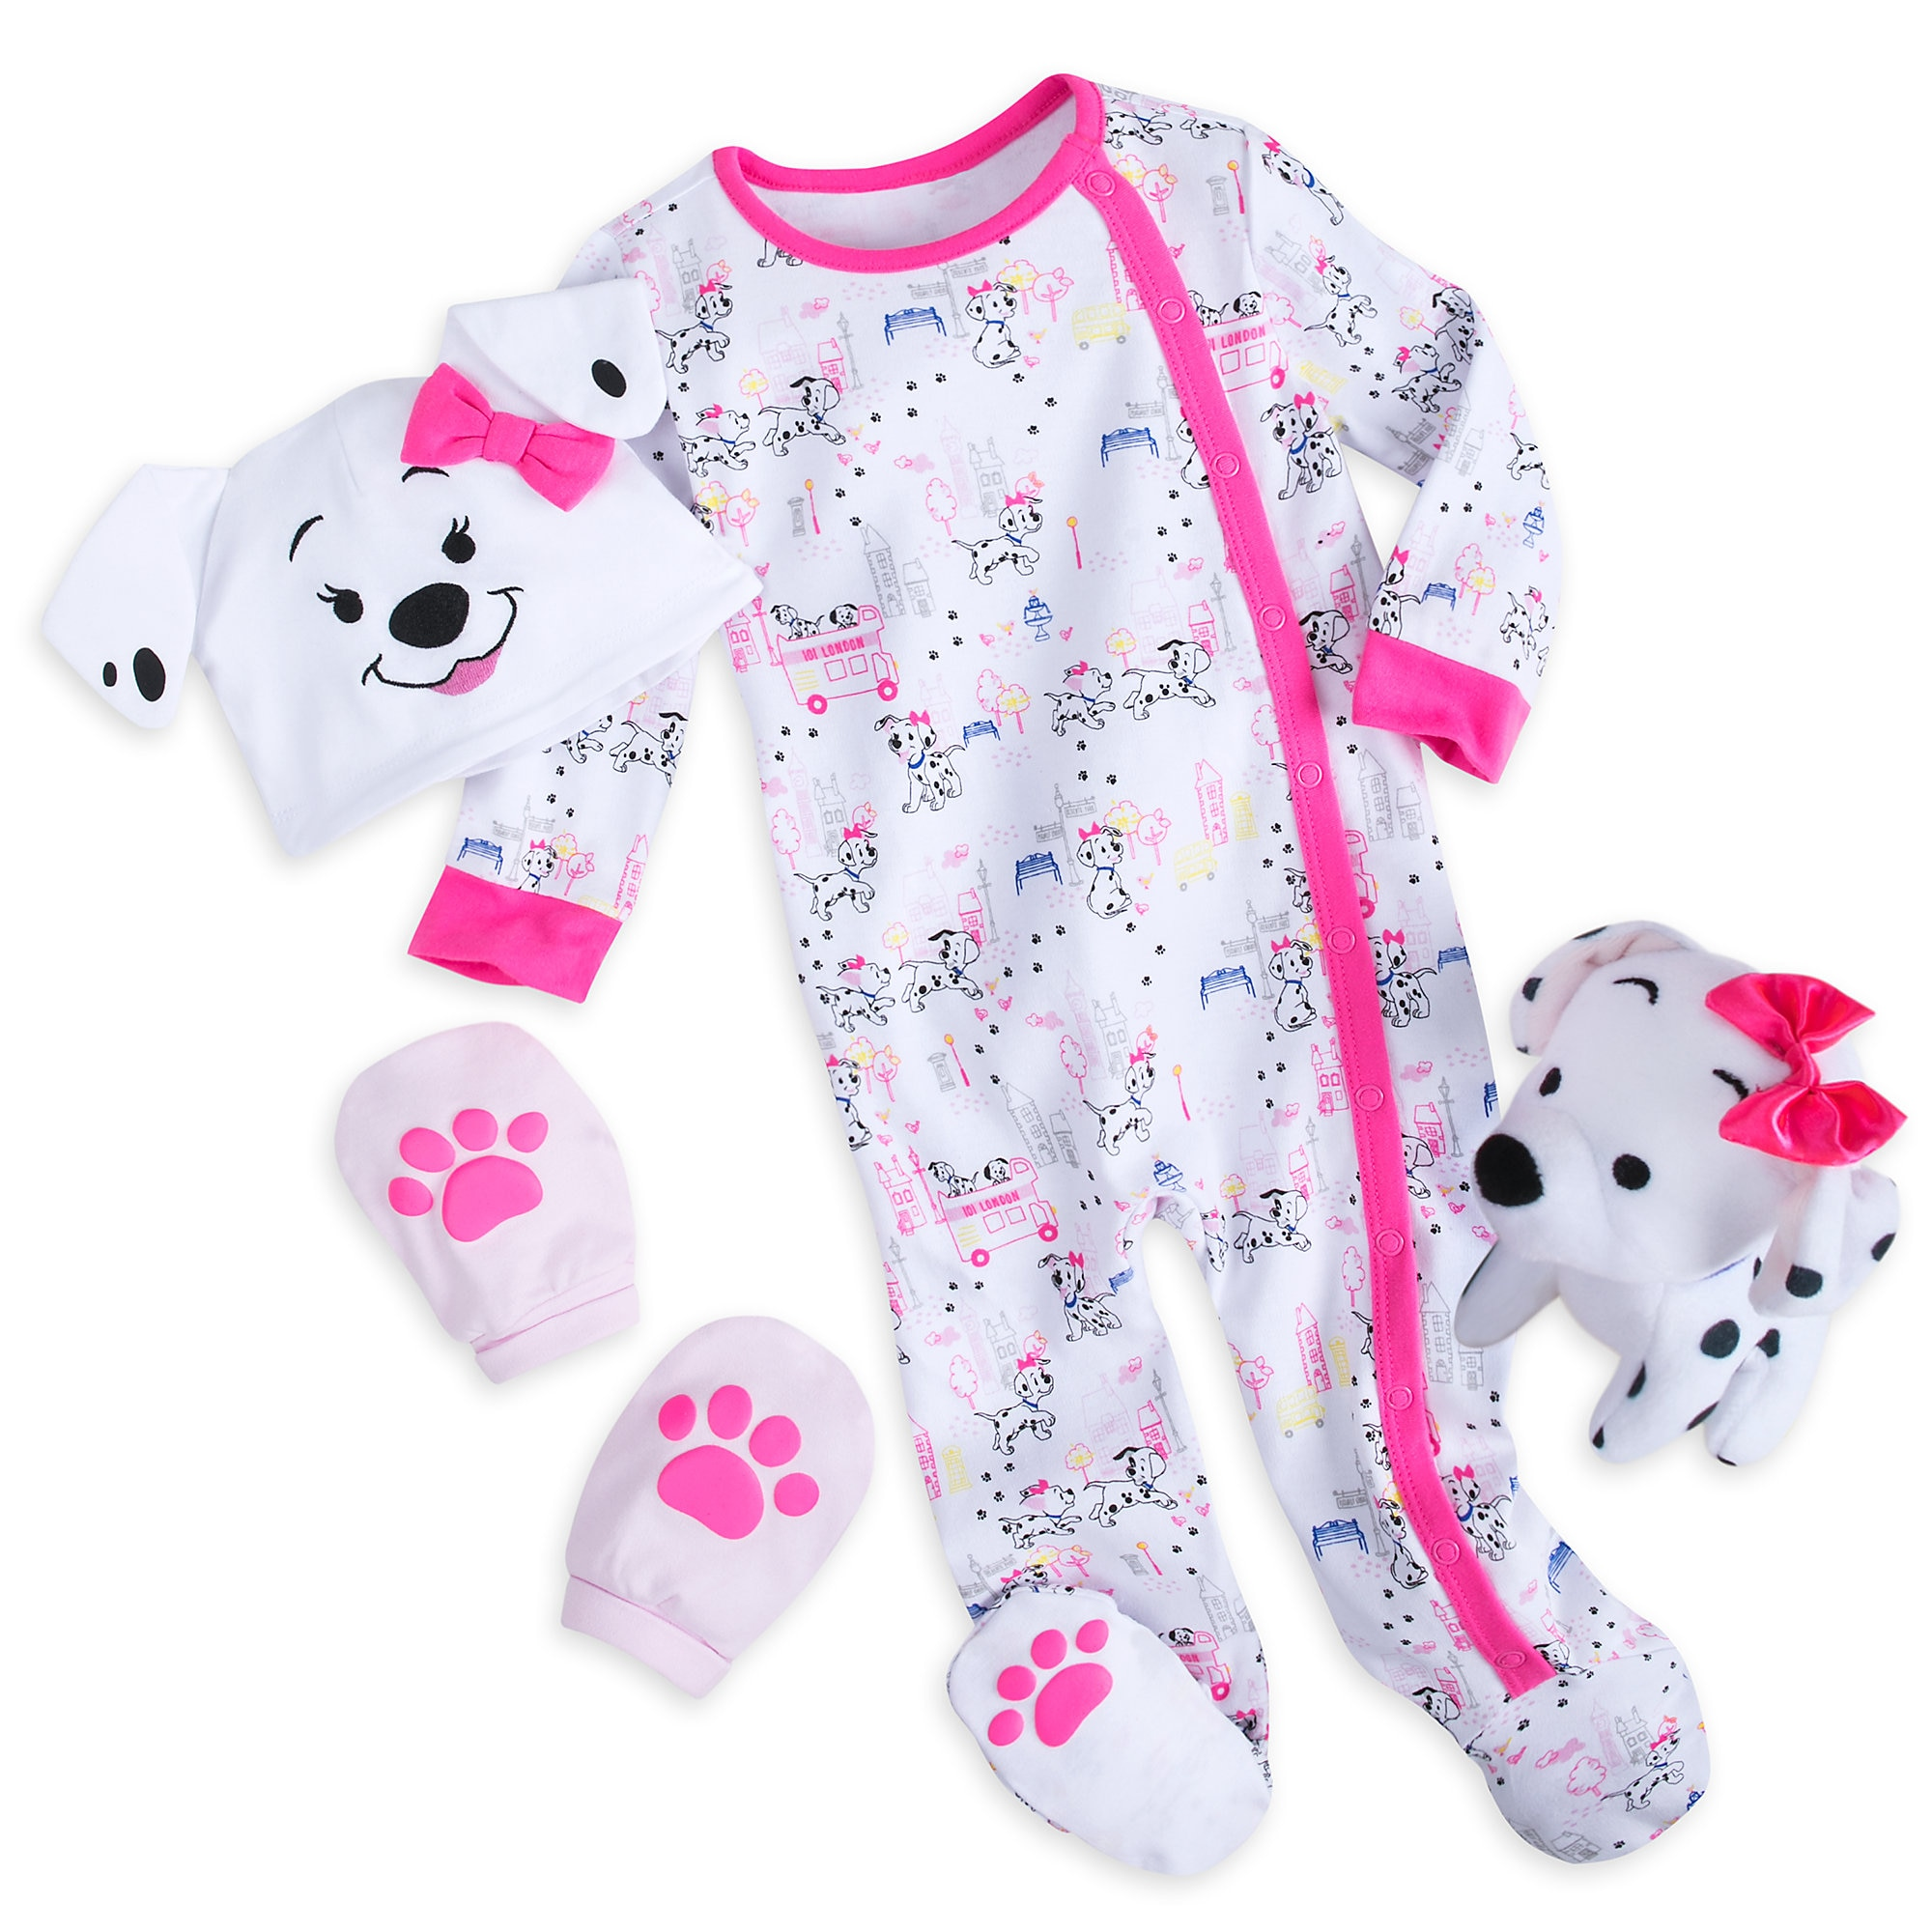 Bad Set For Baby 101 Dalmatians Gift Set For Baby Pink